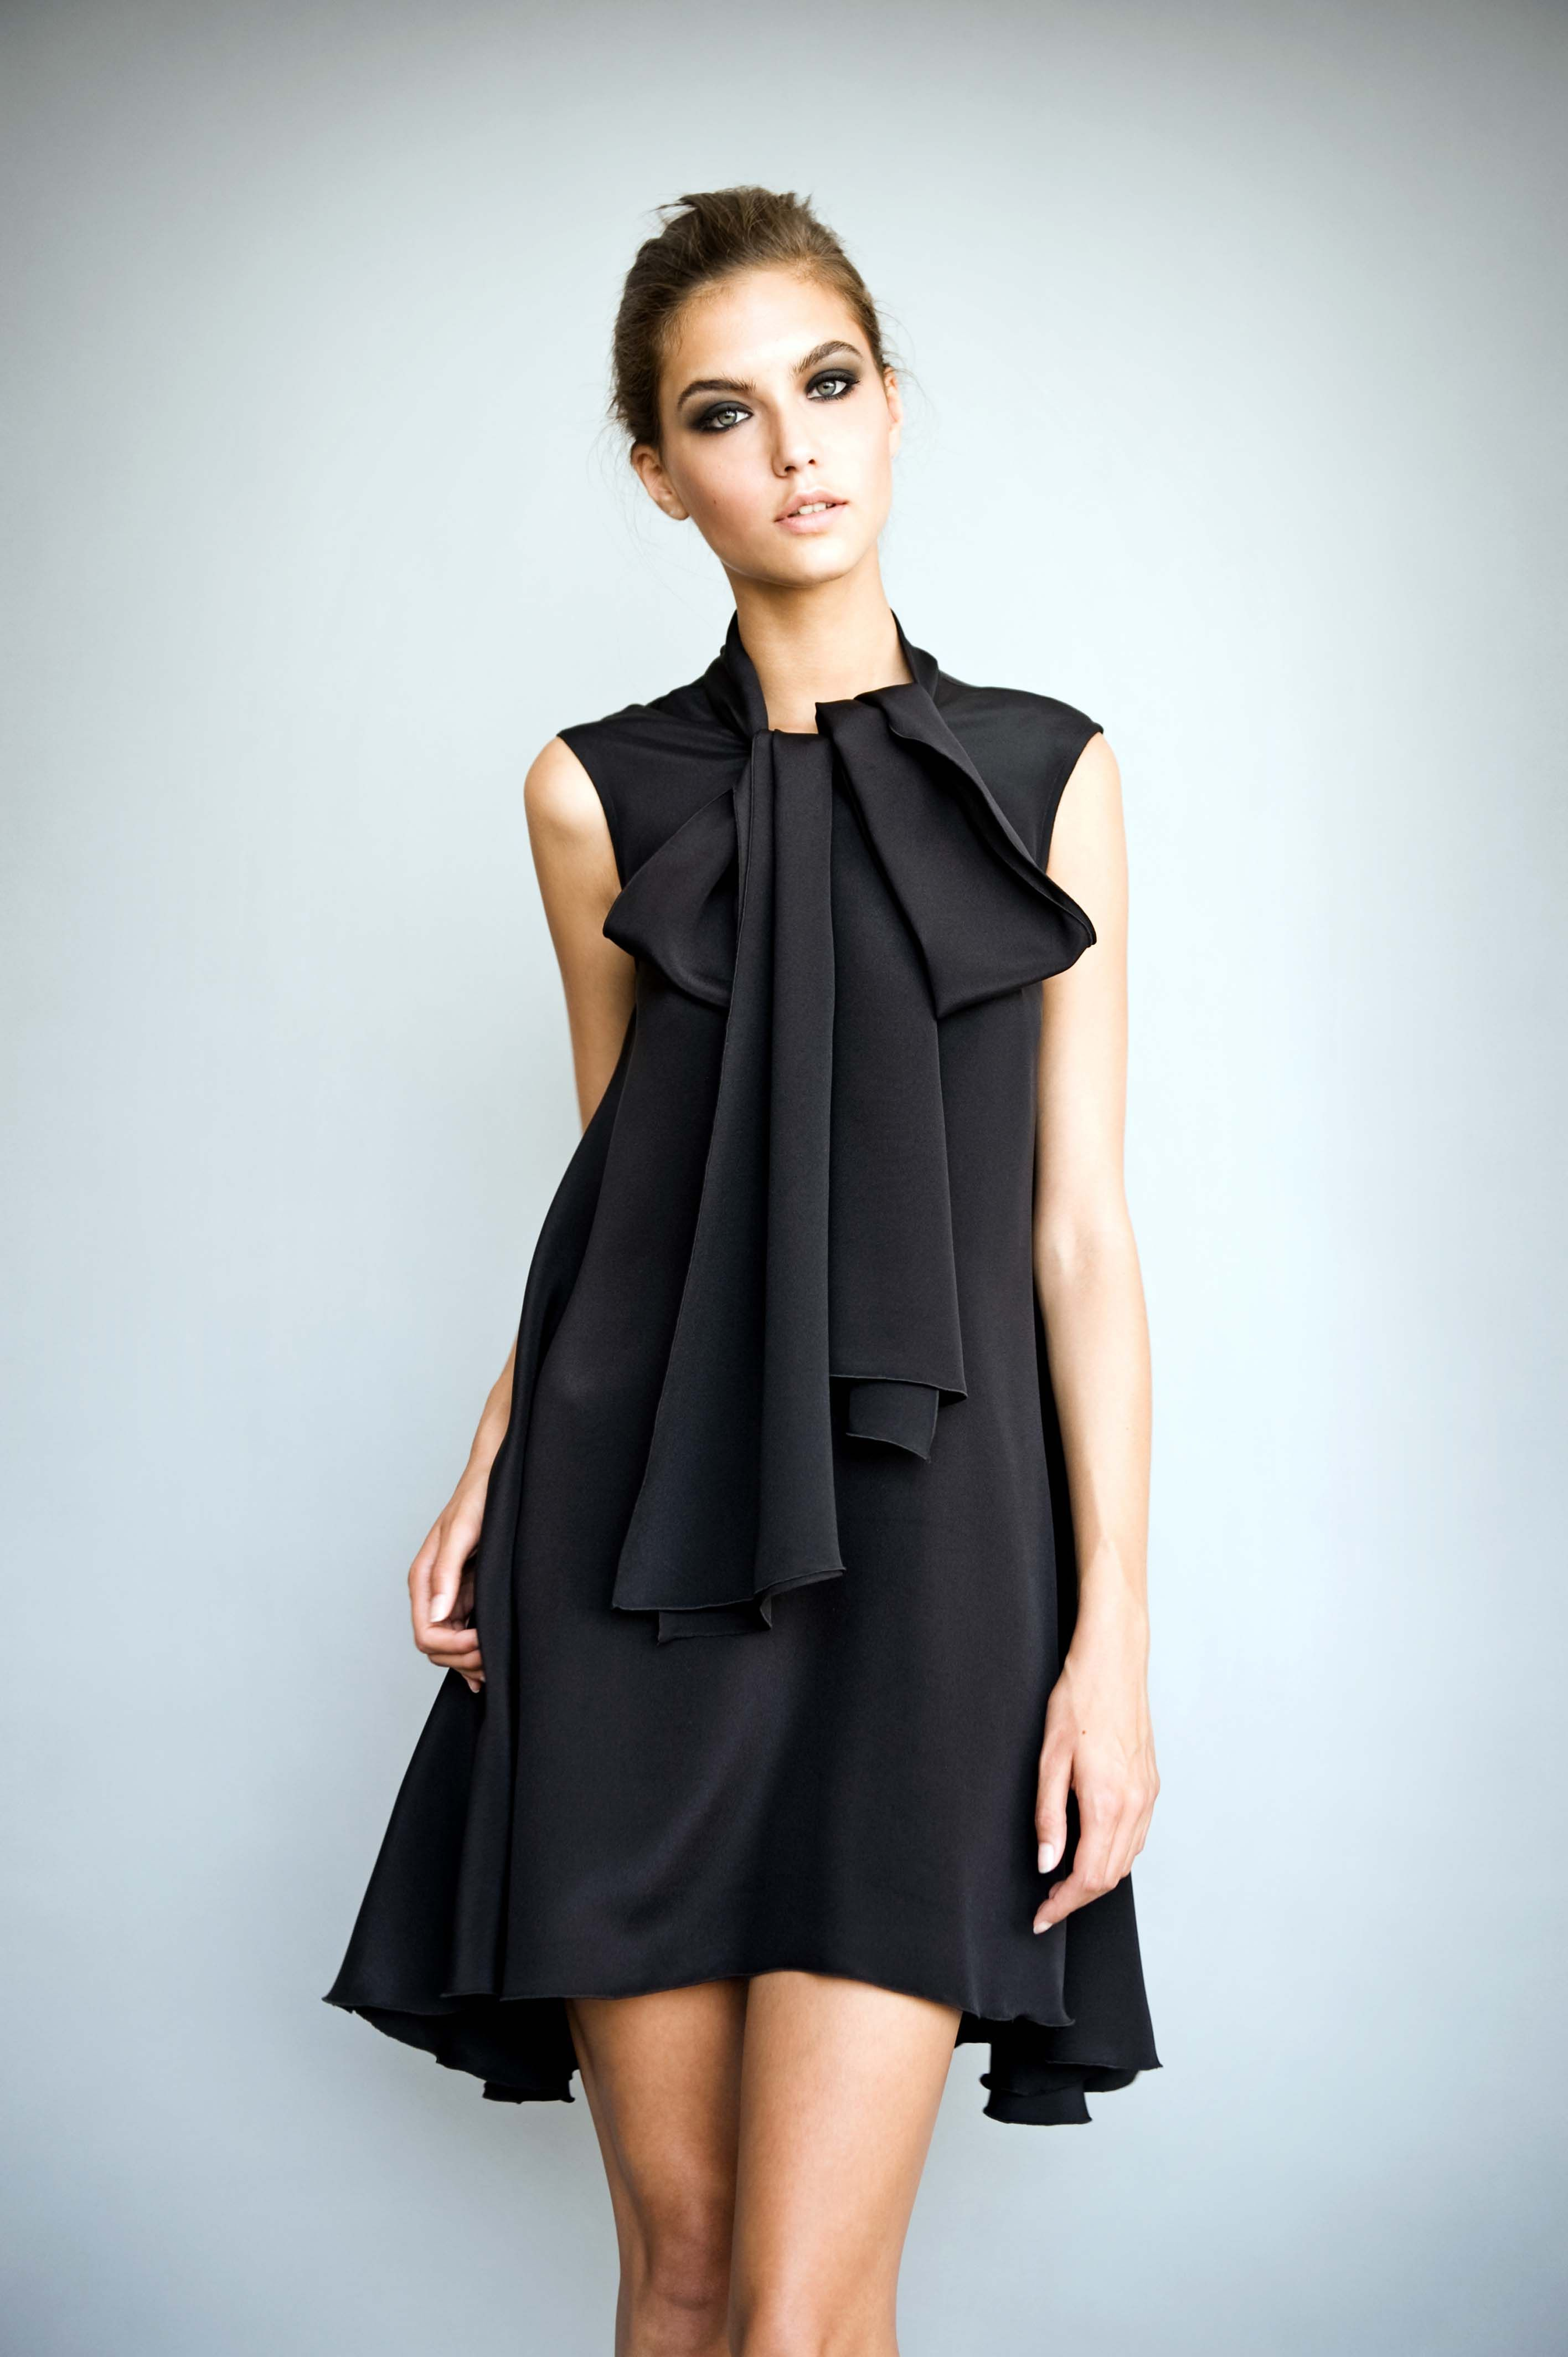 Pin by heather pemble on fashion pinterest lbd collection and woman